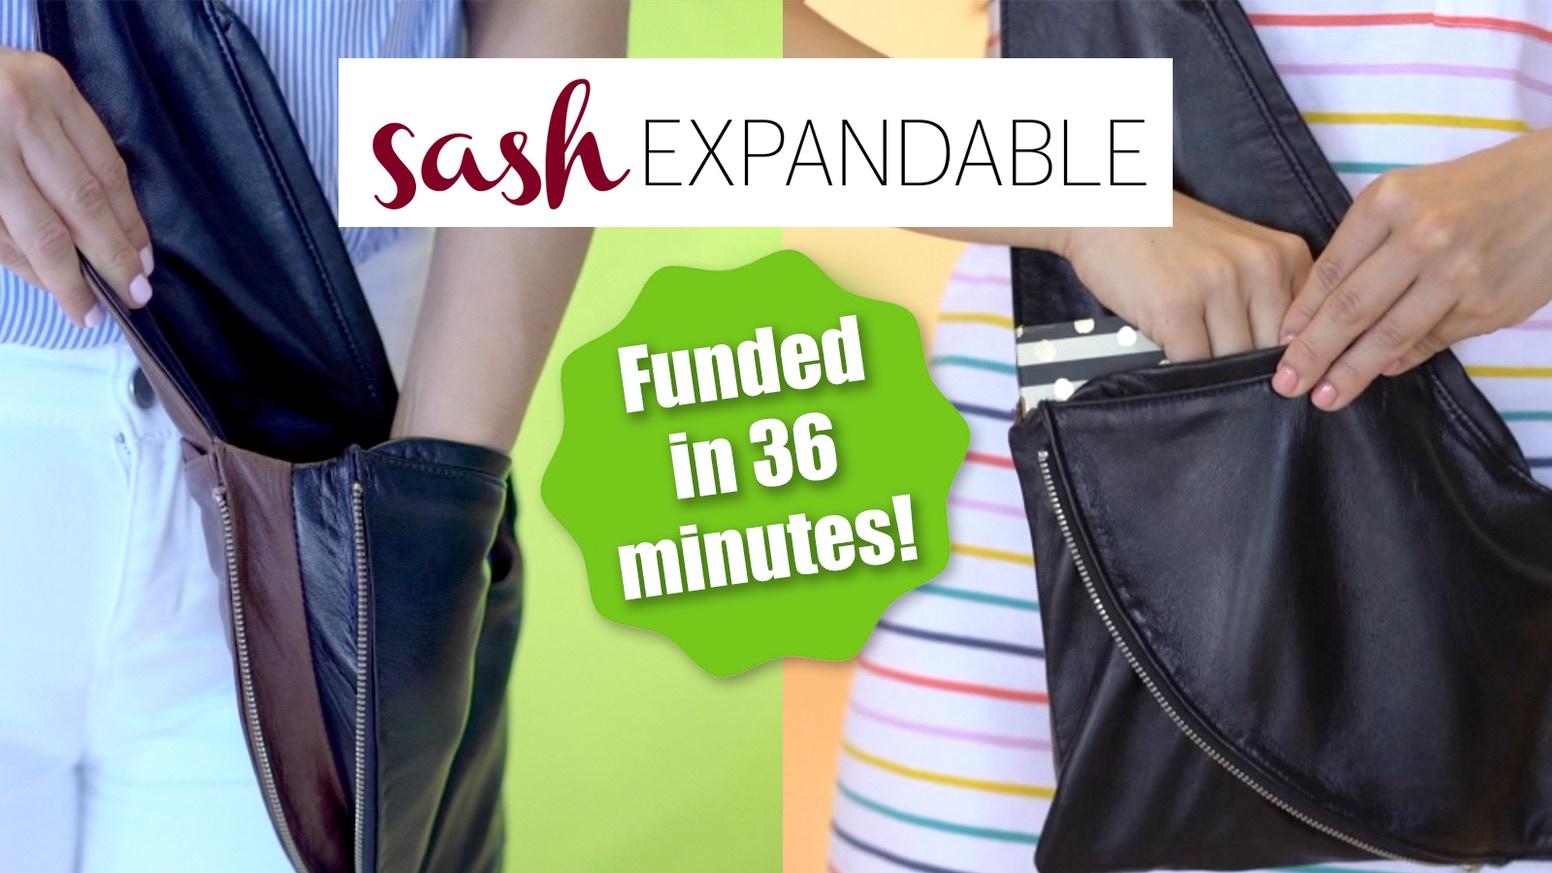 Two years ago Kickstarter brought our Sash bag to life. Now we have made it bigger with expandable pockets in multiple sizes.